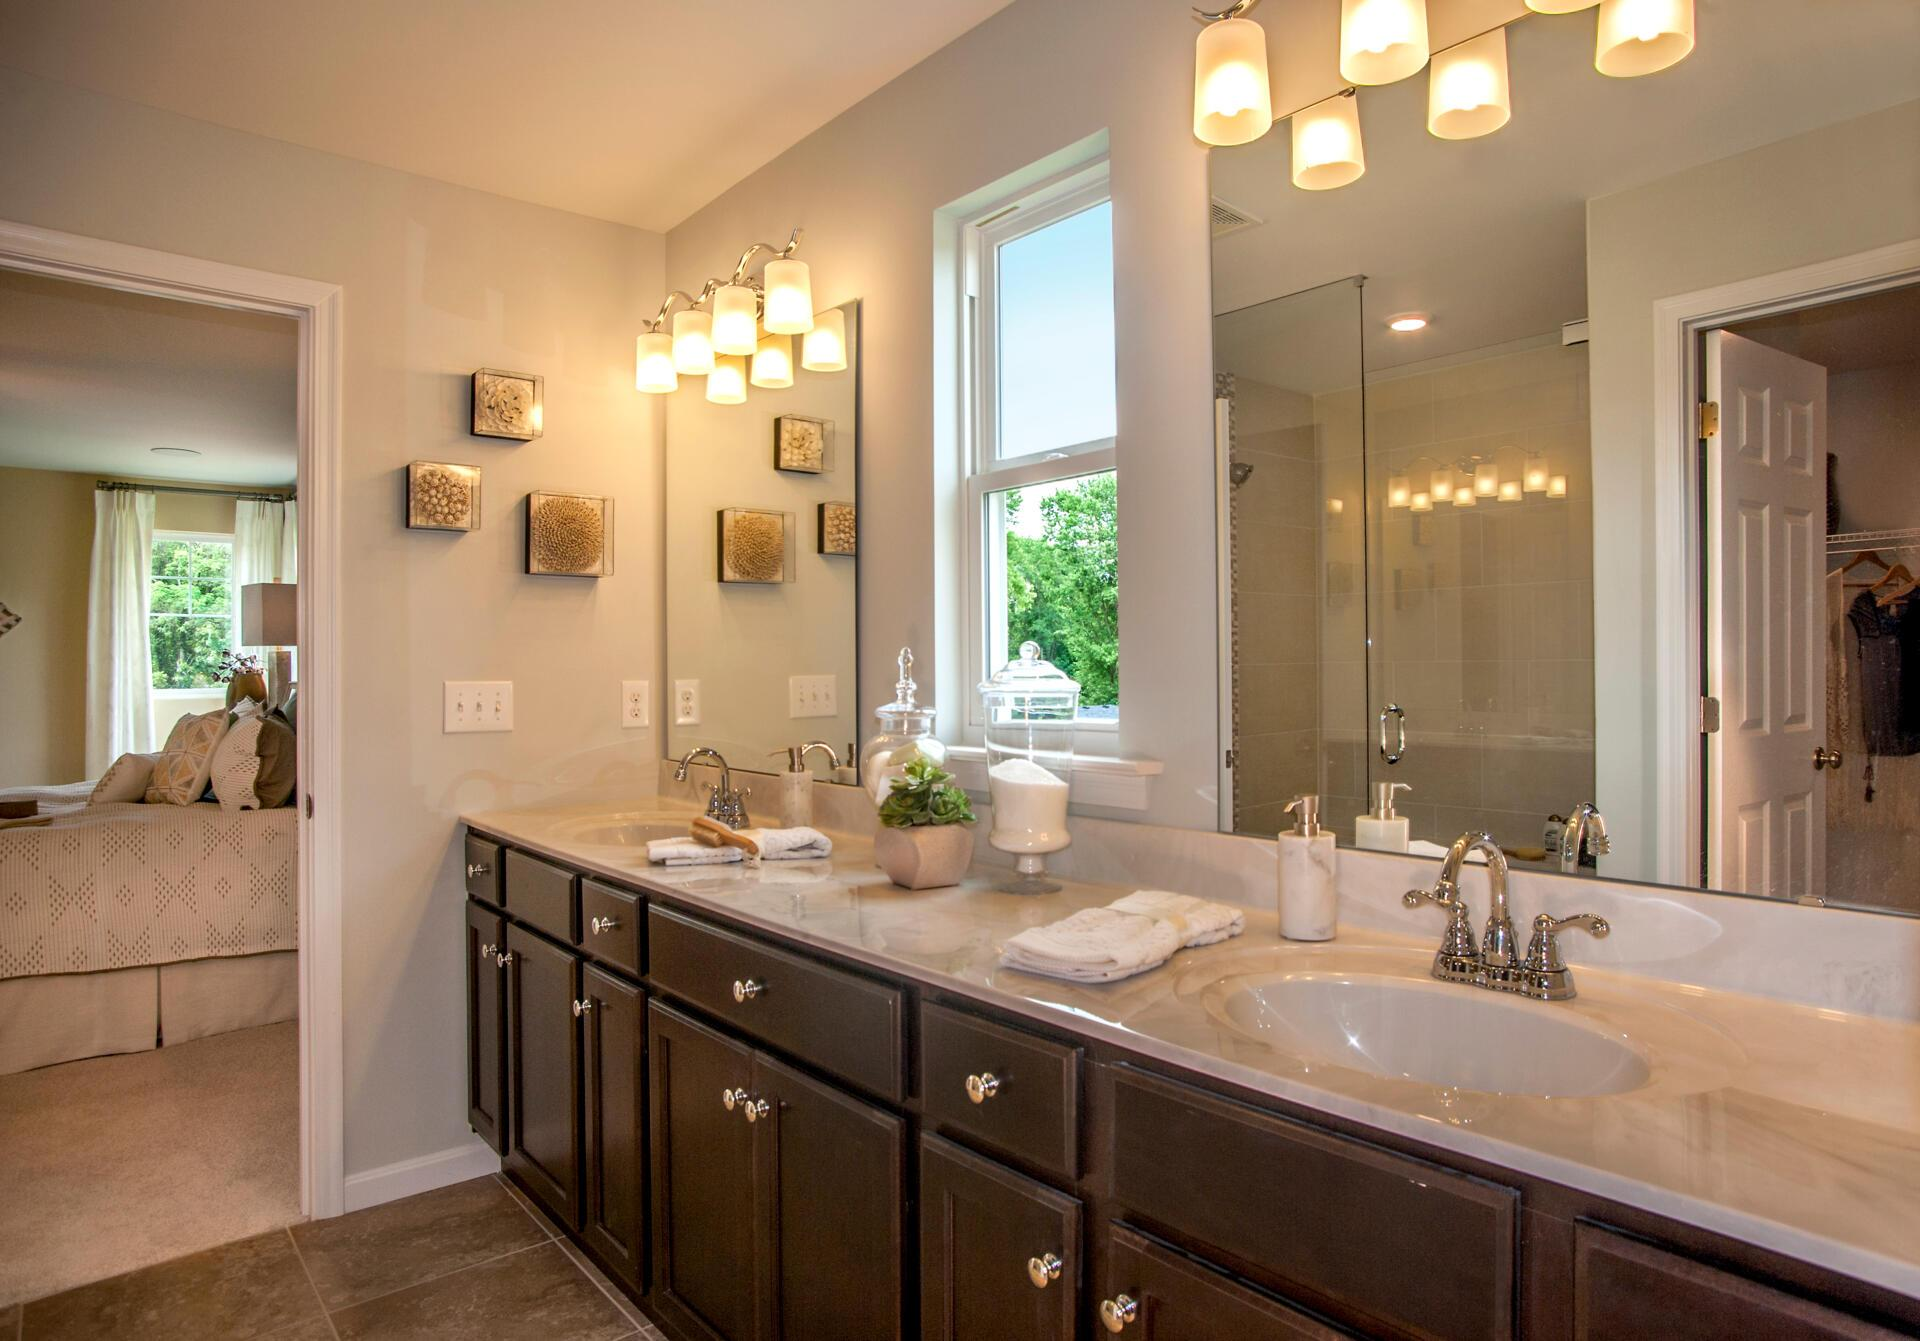 Bathroom featured in the Quentin By Drees Homes in Cincinnati, OH